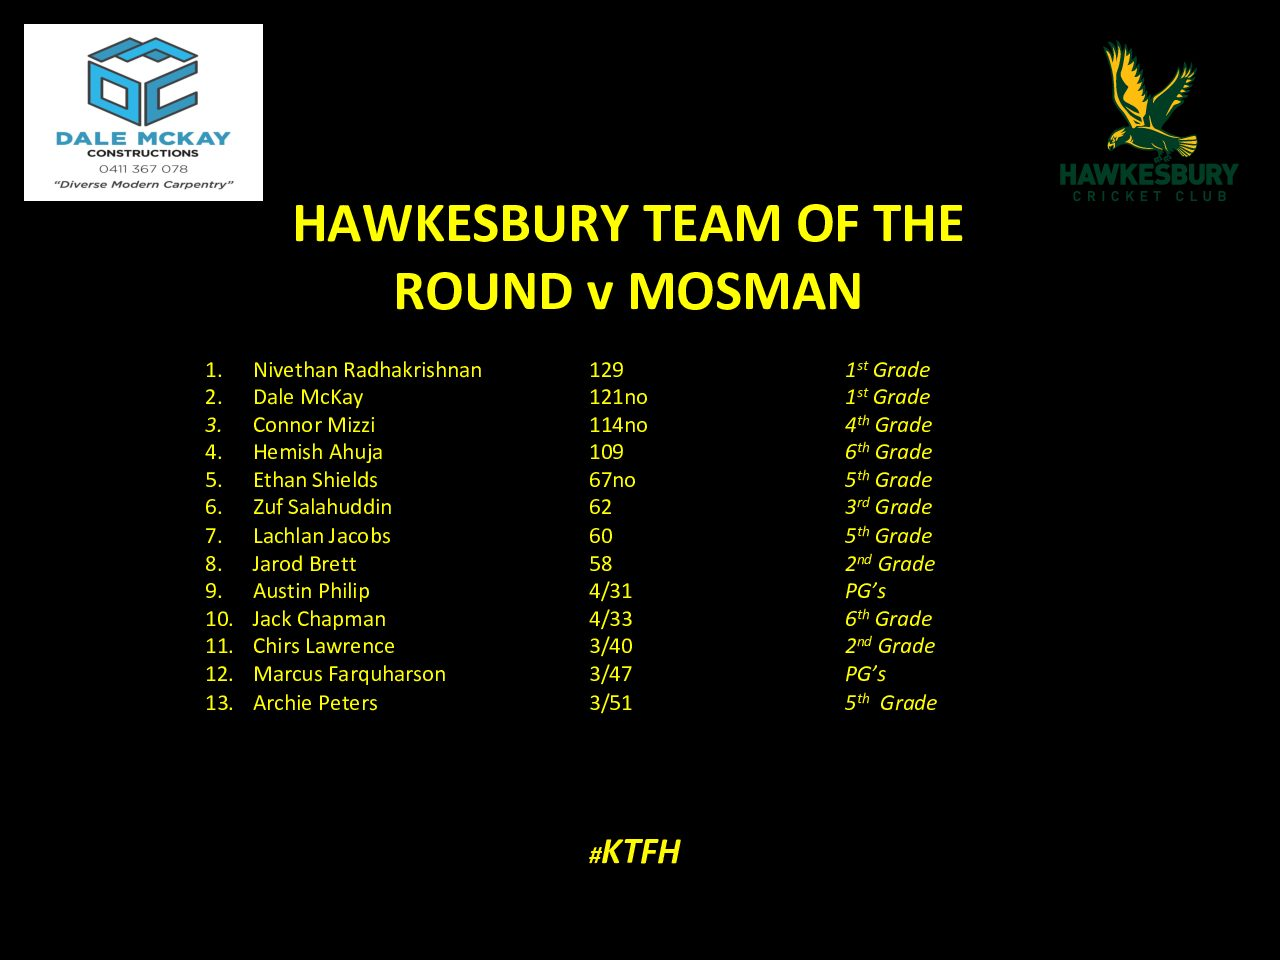 DALE MCKAY CONSTRUCTIONS – HAWKS TEAM OF THE ROUND – MOSMAN